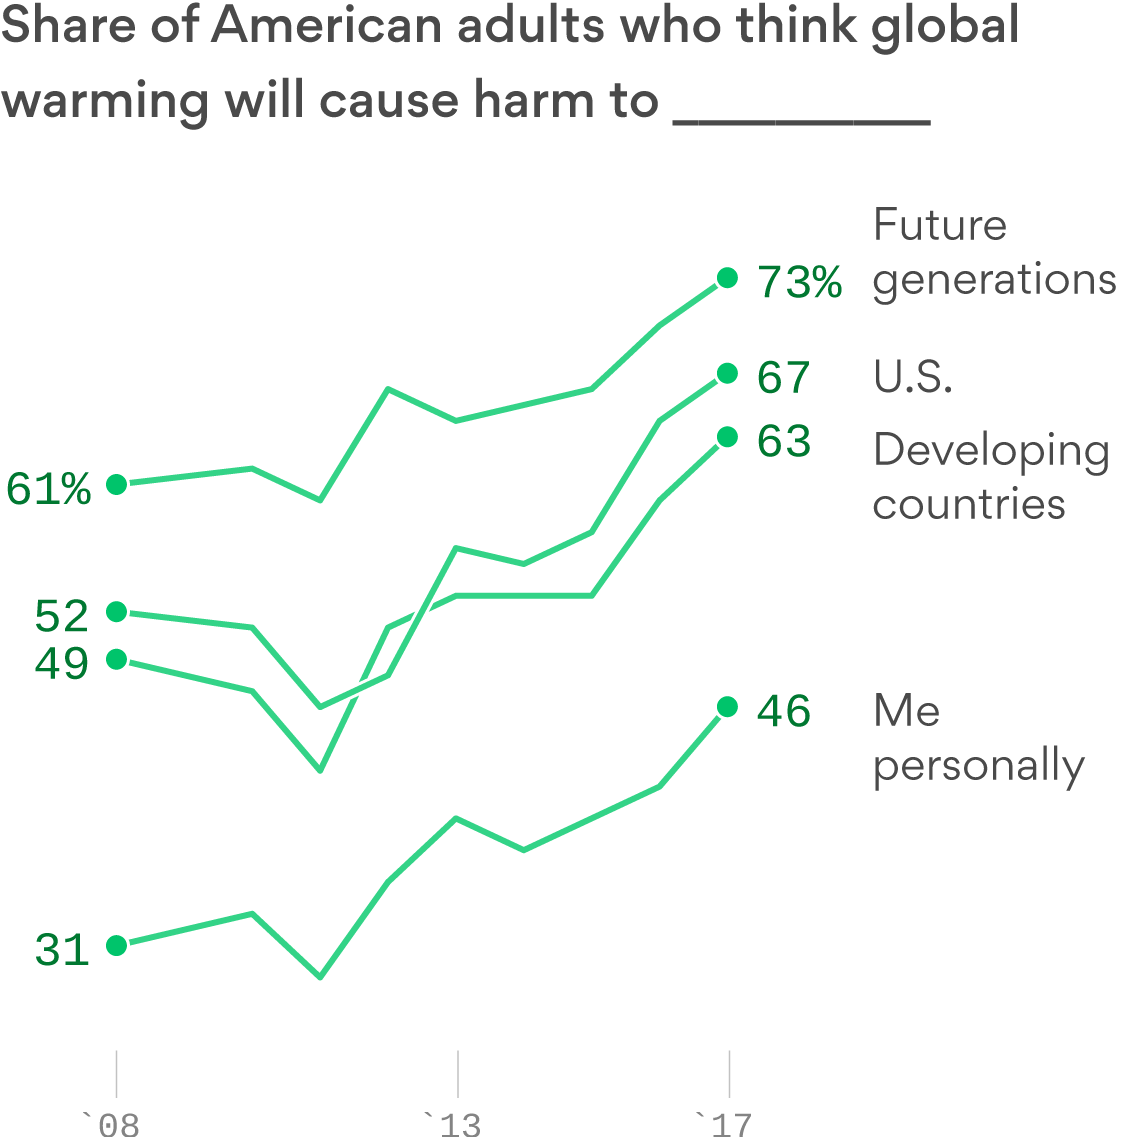 Less than half of American adults think global warming will harm them personally